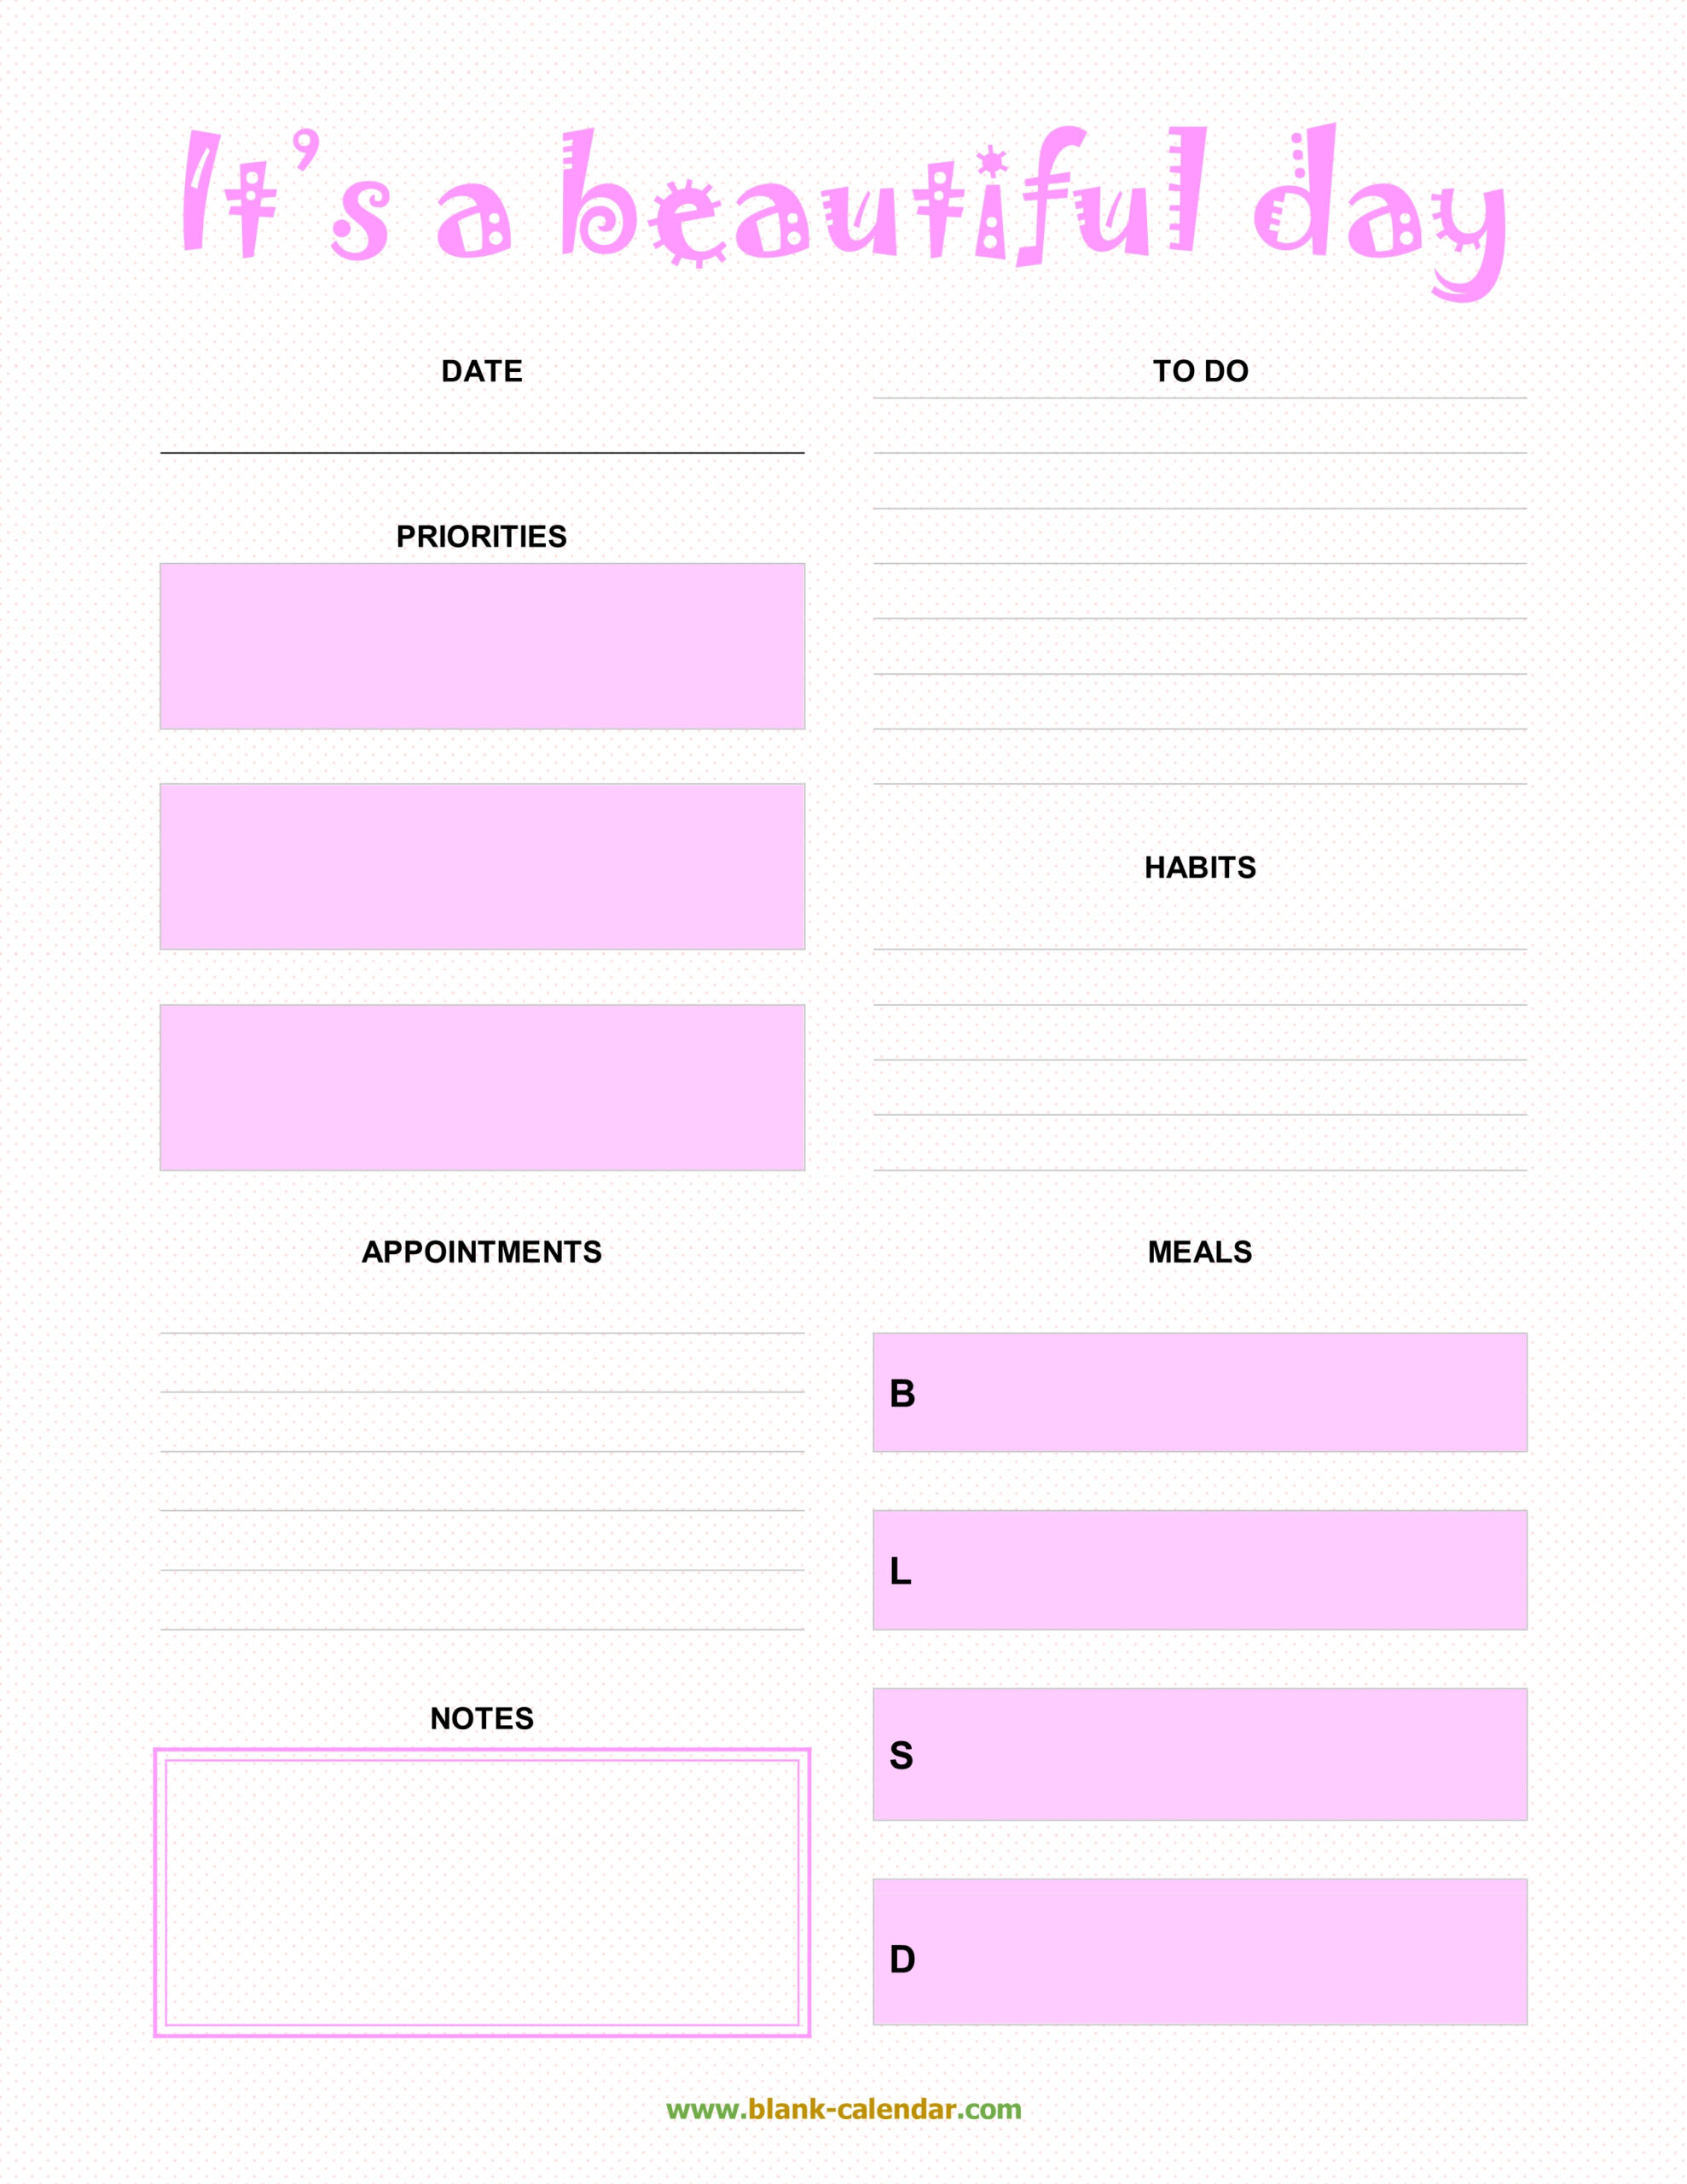 Daily Planner Templates (Word, Excel, Pdf) intended for Daily Agenda Template Word